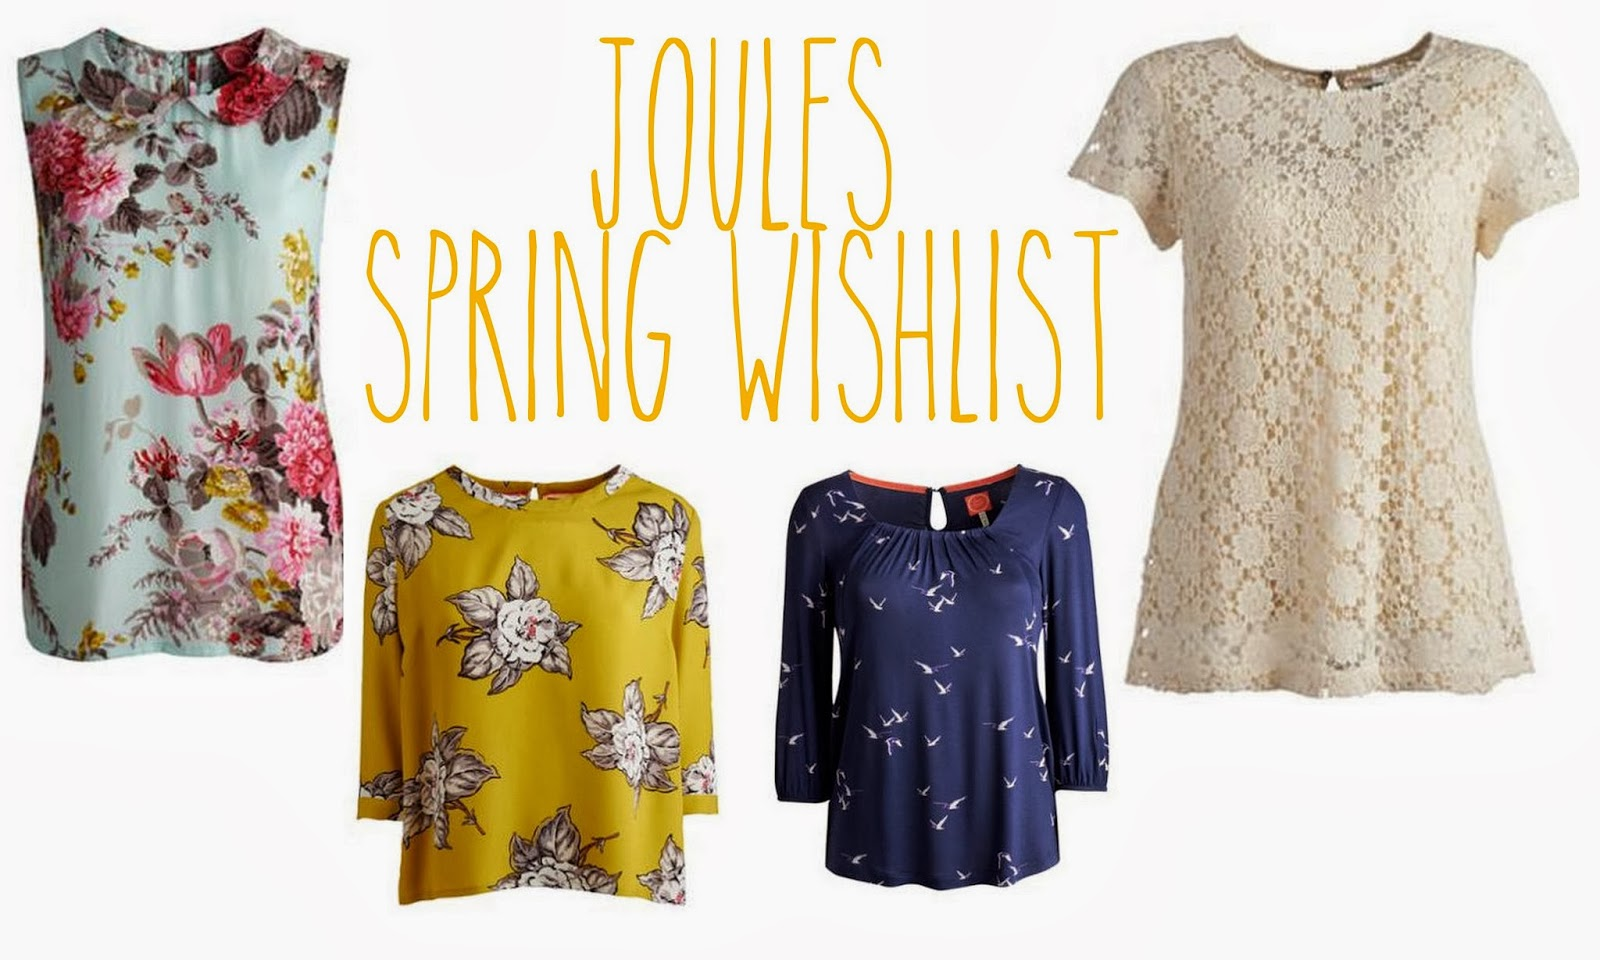 Joules Spring Wishlist women's clothing